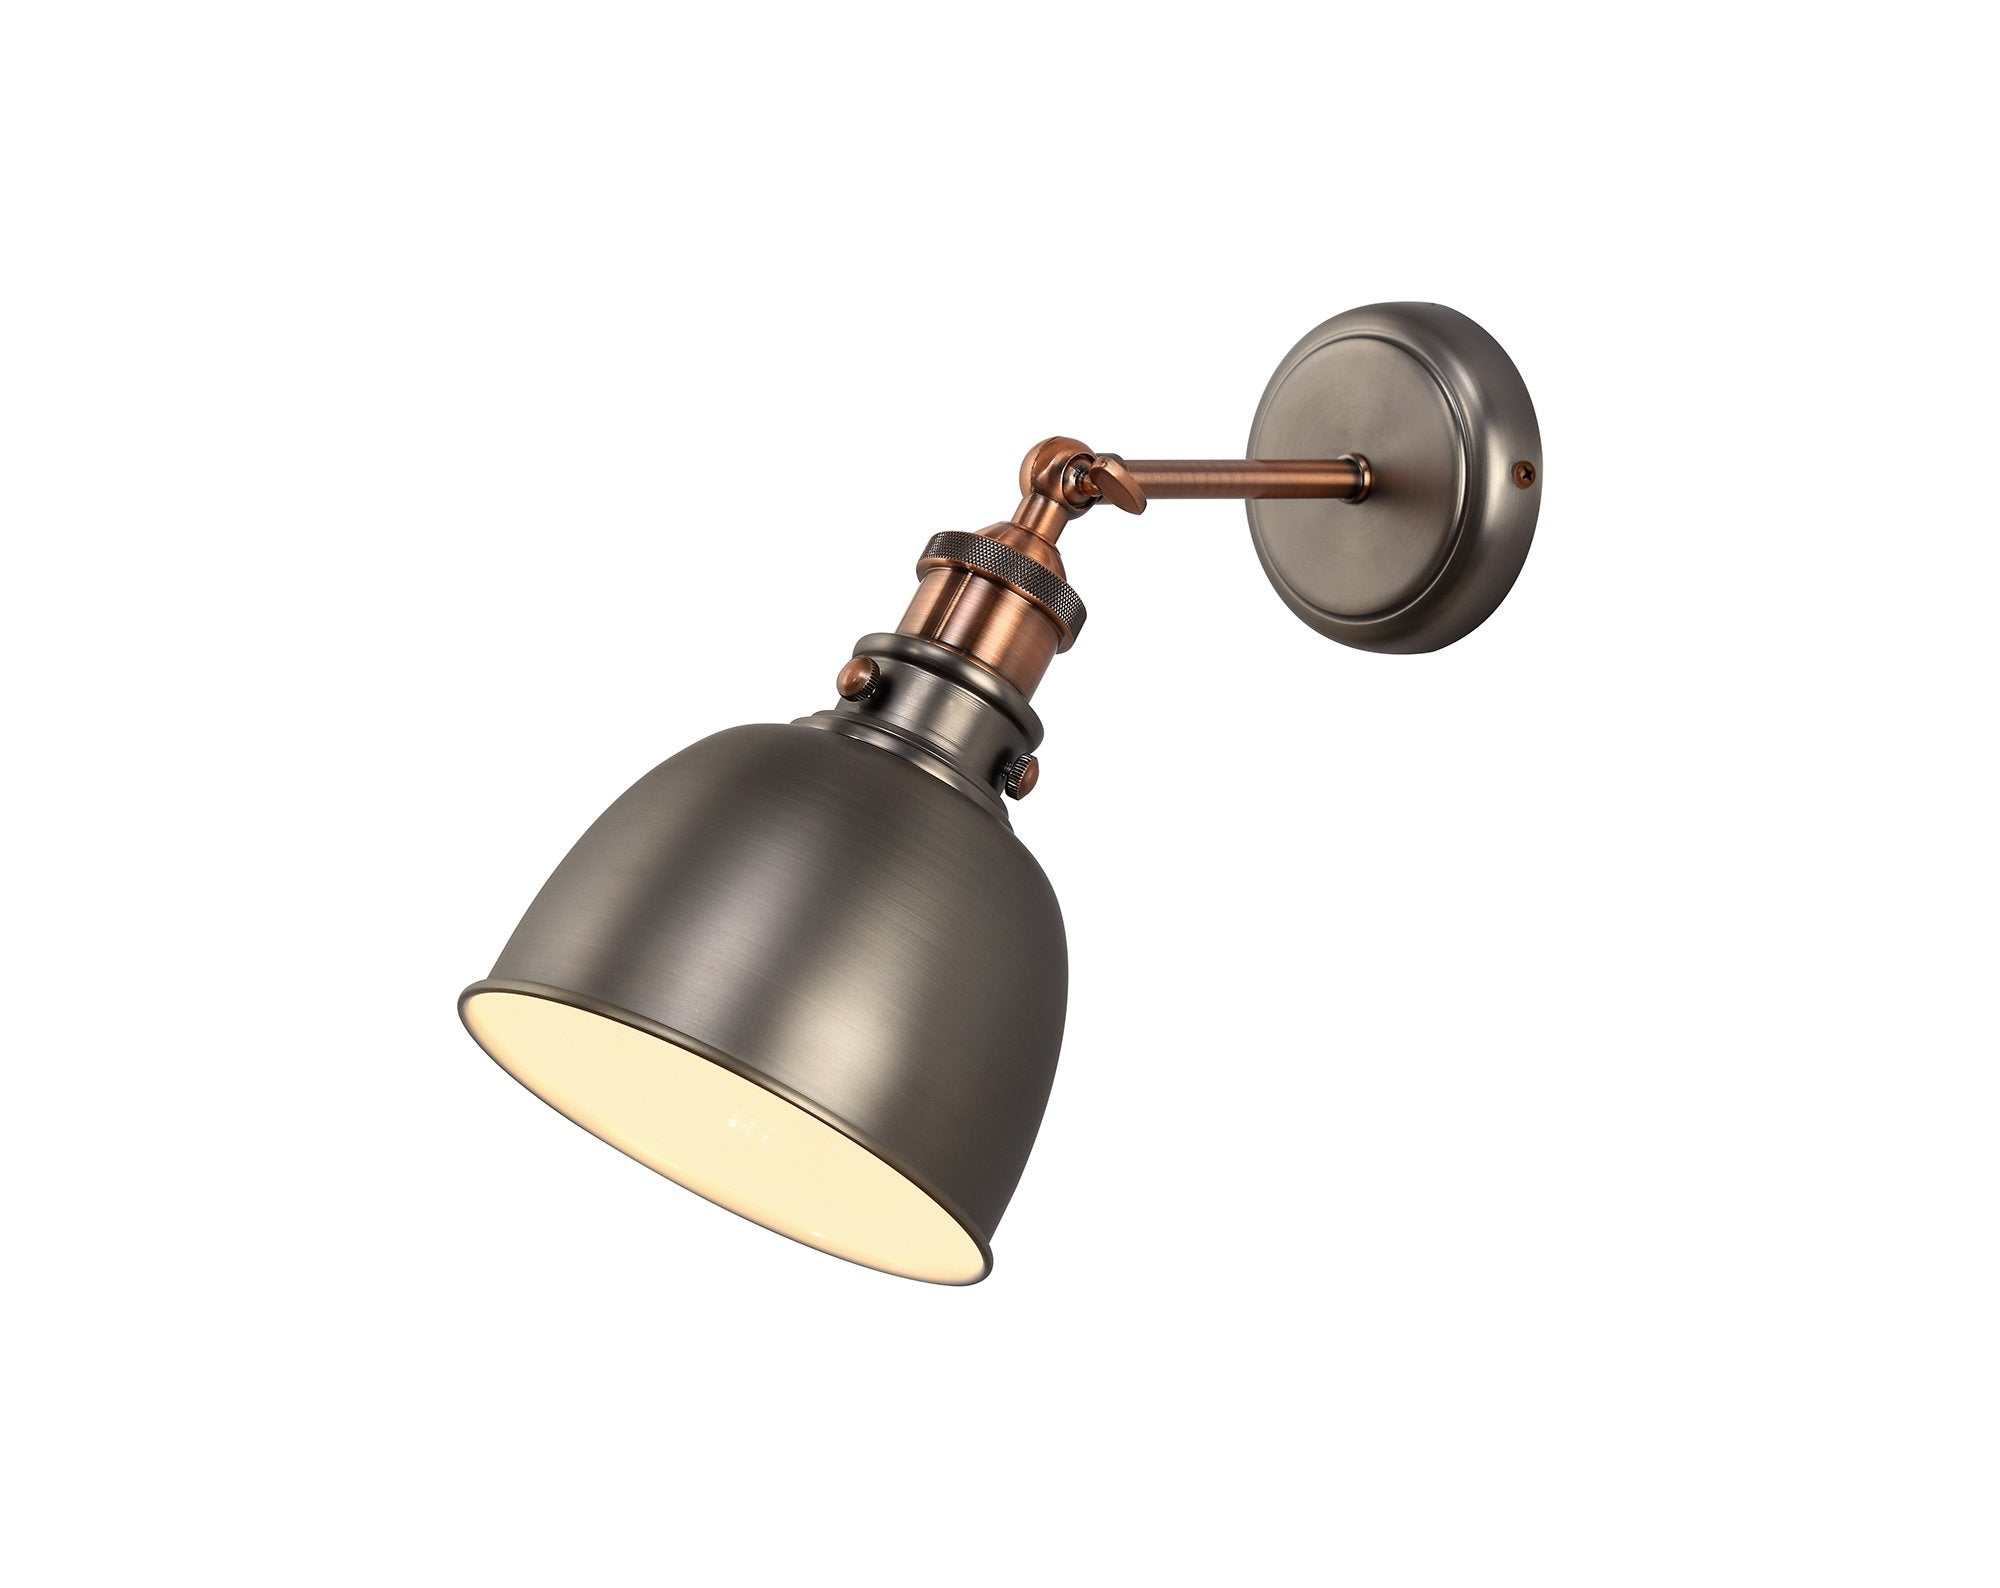 Ministry Adjustable Wall Lamp, 1 x E27, Antique Silver/Copper/White